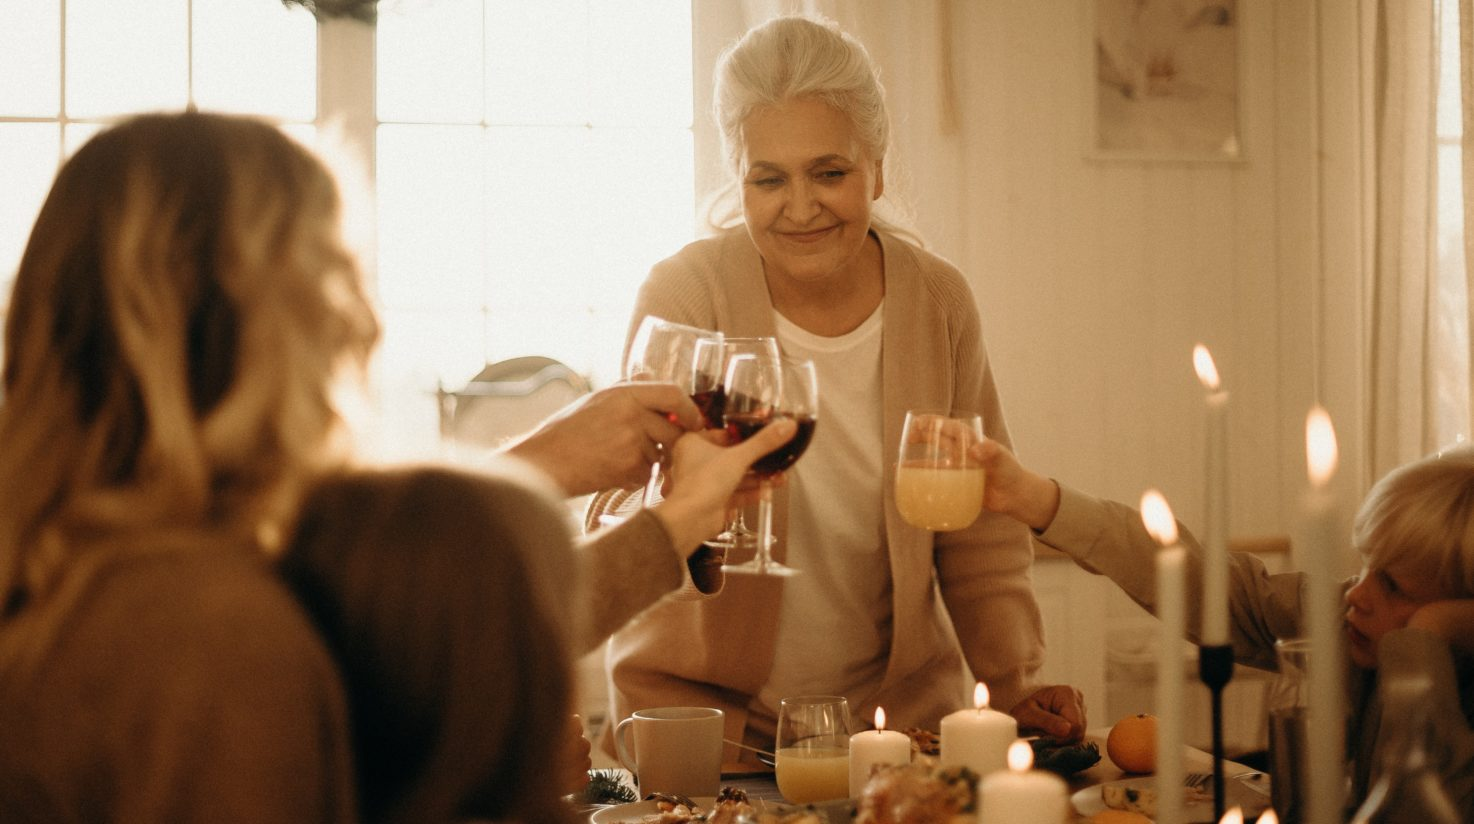 The holidays can be a very hectic time of year. From dinner parties, decorating, and preparing for the arrival of friends and family you can find yourself feeling stressed that might put a damper on holiday festivities. In order to keep you in a balanced state of mind this season, here are some helpful, holistic tips to minimize holiday stress. 1. Aromatherapy Aromatherapy is a great way to help maintain a relaxed and cheerful mood during holiday preparations. Aromatherapy works through stimulating receptors in the nose and sending messages to the nervous system which can cause pleasant emotional reactions. The following essentials oils work well to help produce a feeling of peace and relaxation: Lavender - helps with relaxation and combats insomnia Yuzu - helps soothe stress and anxiety Bergamot - helps reduce anxiety and fatigue Buying a defuser or vaporizer for your home can help surround you with feelings of calm and relaxation while you tend to cleaning and preparing those amazing holiday meals. 2. Meditation Setting some quiet time aside during your holiday preparations is a great way of rebalancing your mind, body, and spirit. Listen to some calming music and spend time focusing on your breaths in order to ward off negative feelings that might become overwhelming and stressful. There are countless Youtube videos on guided meditations for beginners that can fit into any hectic holiday schedule. Here are some recommended guided meditation videos that you can try on your own: Alan Watts - 15-Minute Guided Meditation Sam Harris - 9-Minute Mindfulness Meditation Sadhguru - 20-Minute Morning and Evening Meditation 3. Herbal Teas Herbal teas are also an excellent way to help easily maintain a calm and cheerful mood throughout the holidays. Similar to aromatherapy, herbal teas tend to have nutrients that can work to stimulate parts of your nervous system and bring relaxation. Brew a cup of one of the following teas for you and your family: Peppermint - has natural me